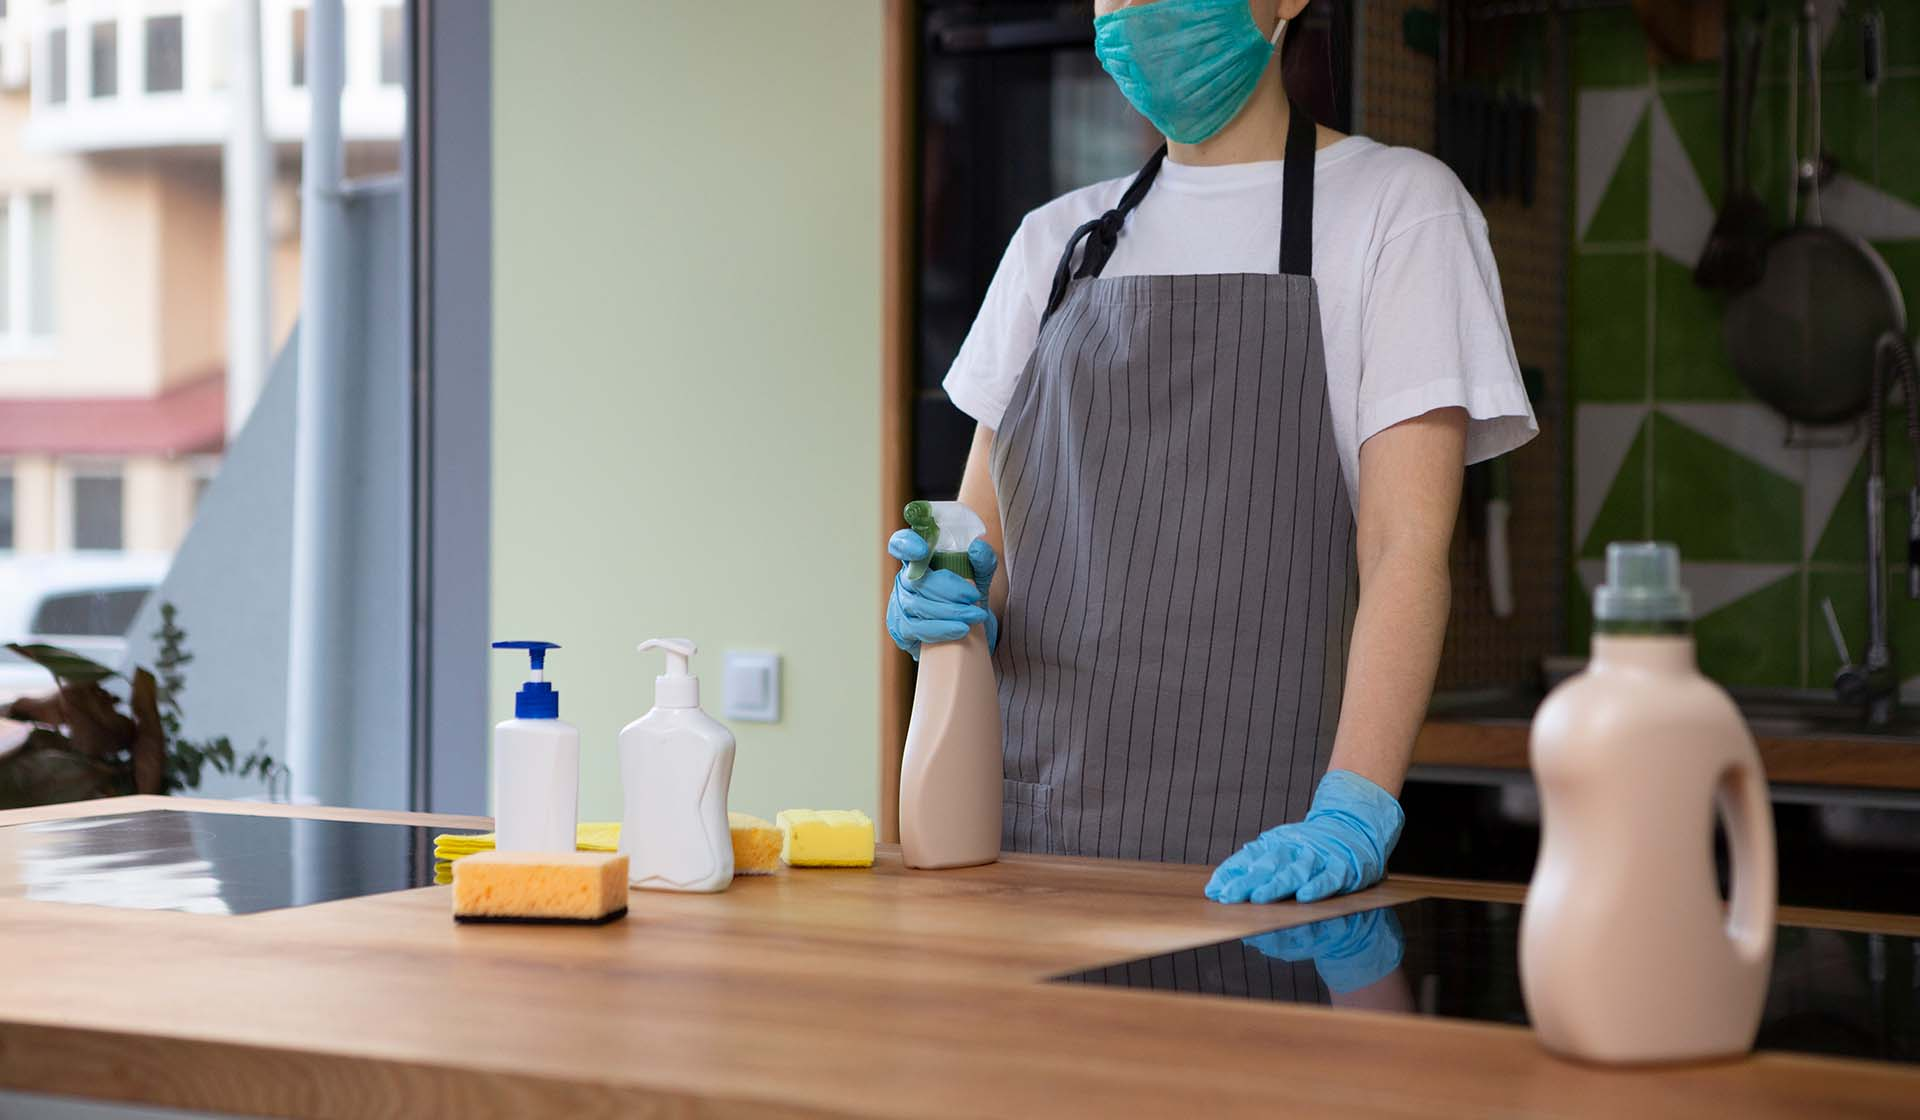 What Cleaning Supplies Do I Need to Start a Cleaning Business?